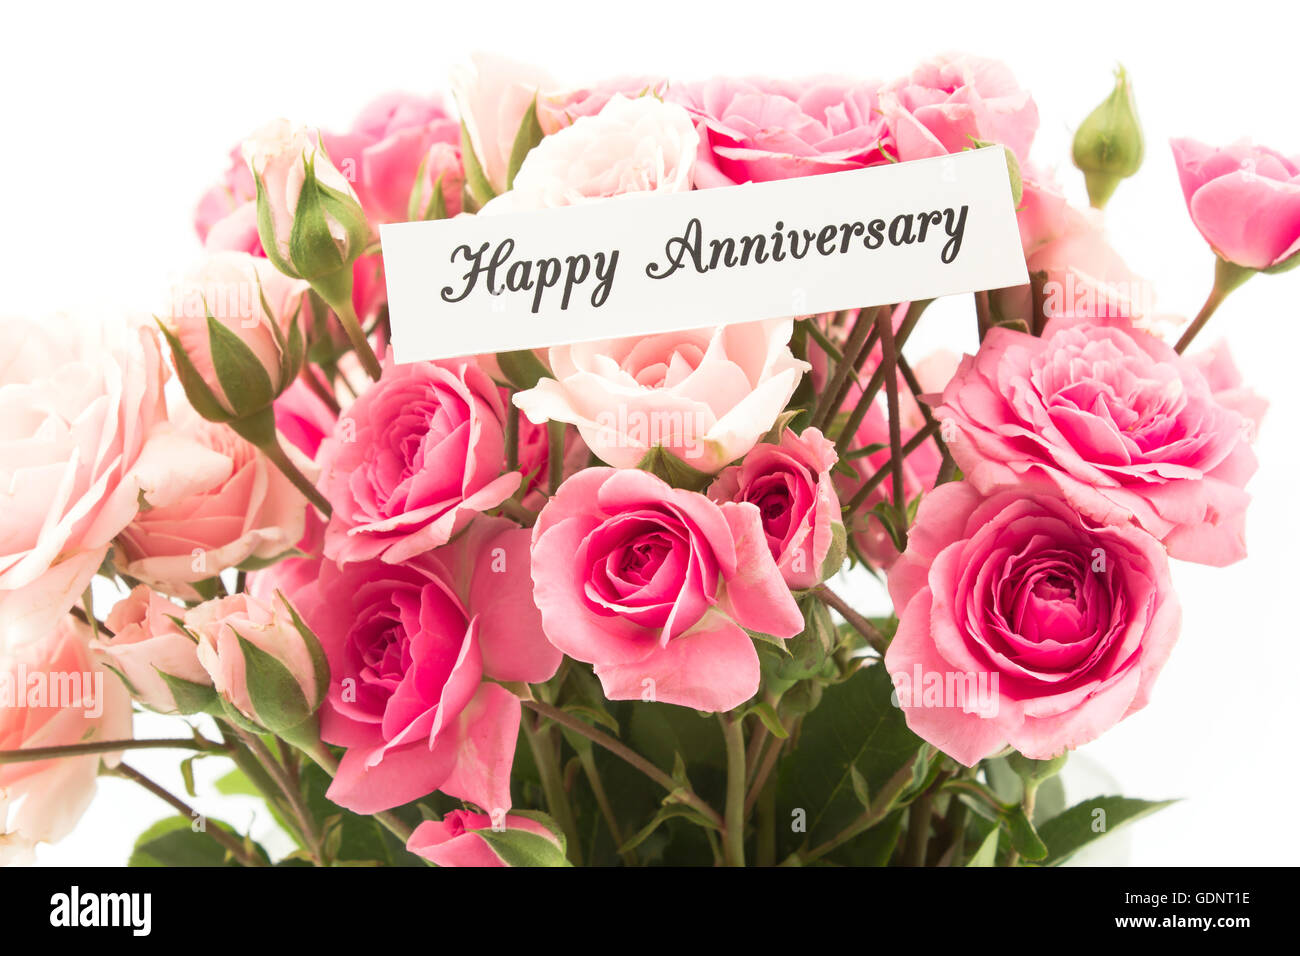 Happy anniversary card with bouquet of pink roses stock photo happy anniversary card with bouquet of pink roses izmirmasajfo